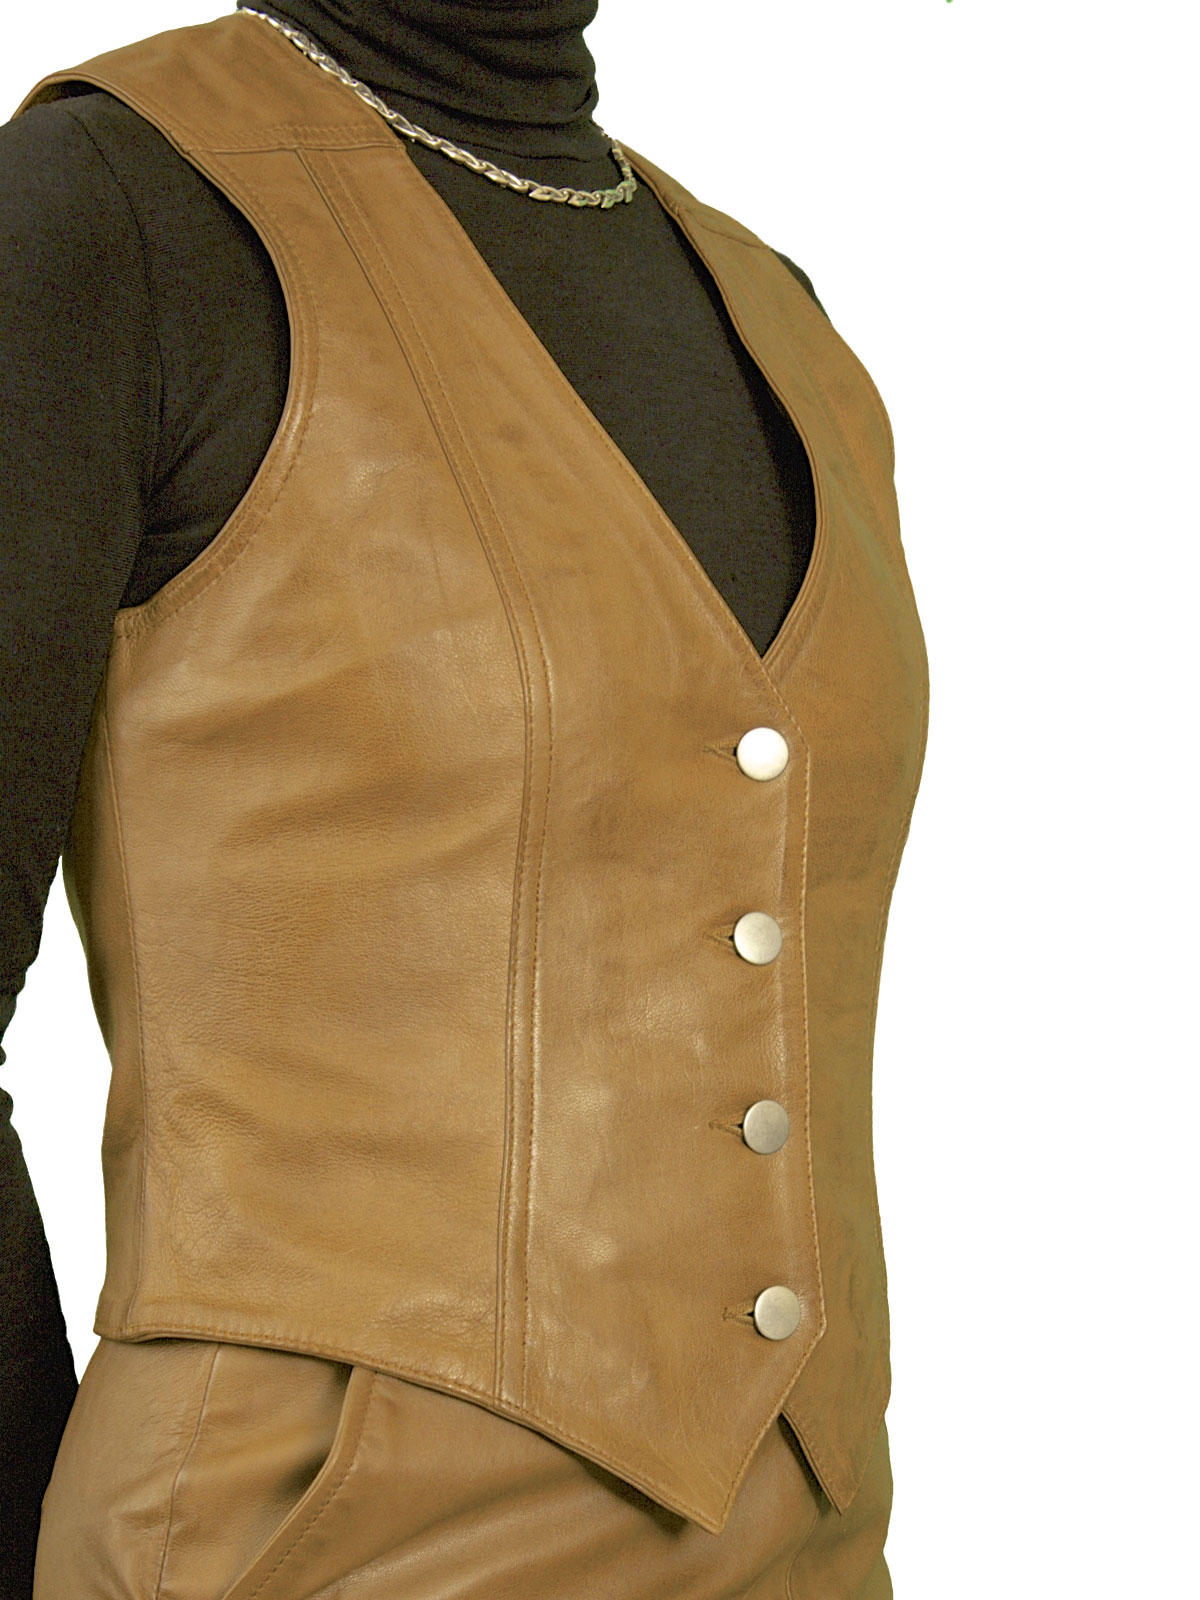 Find suede leather waistcoats at ShopStyle. Shop the latest collection of suede leather waistcoats from the most popular stores - all in one place.